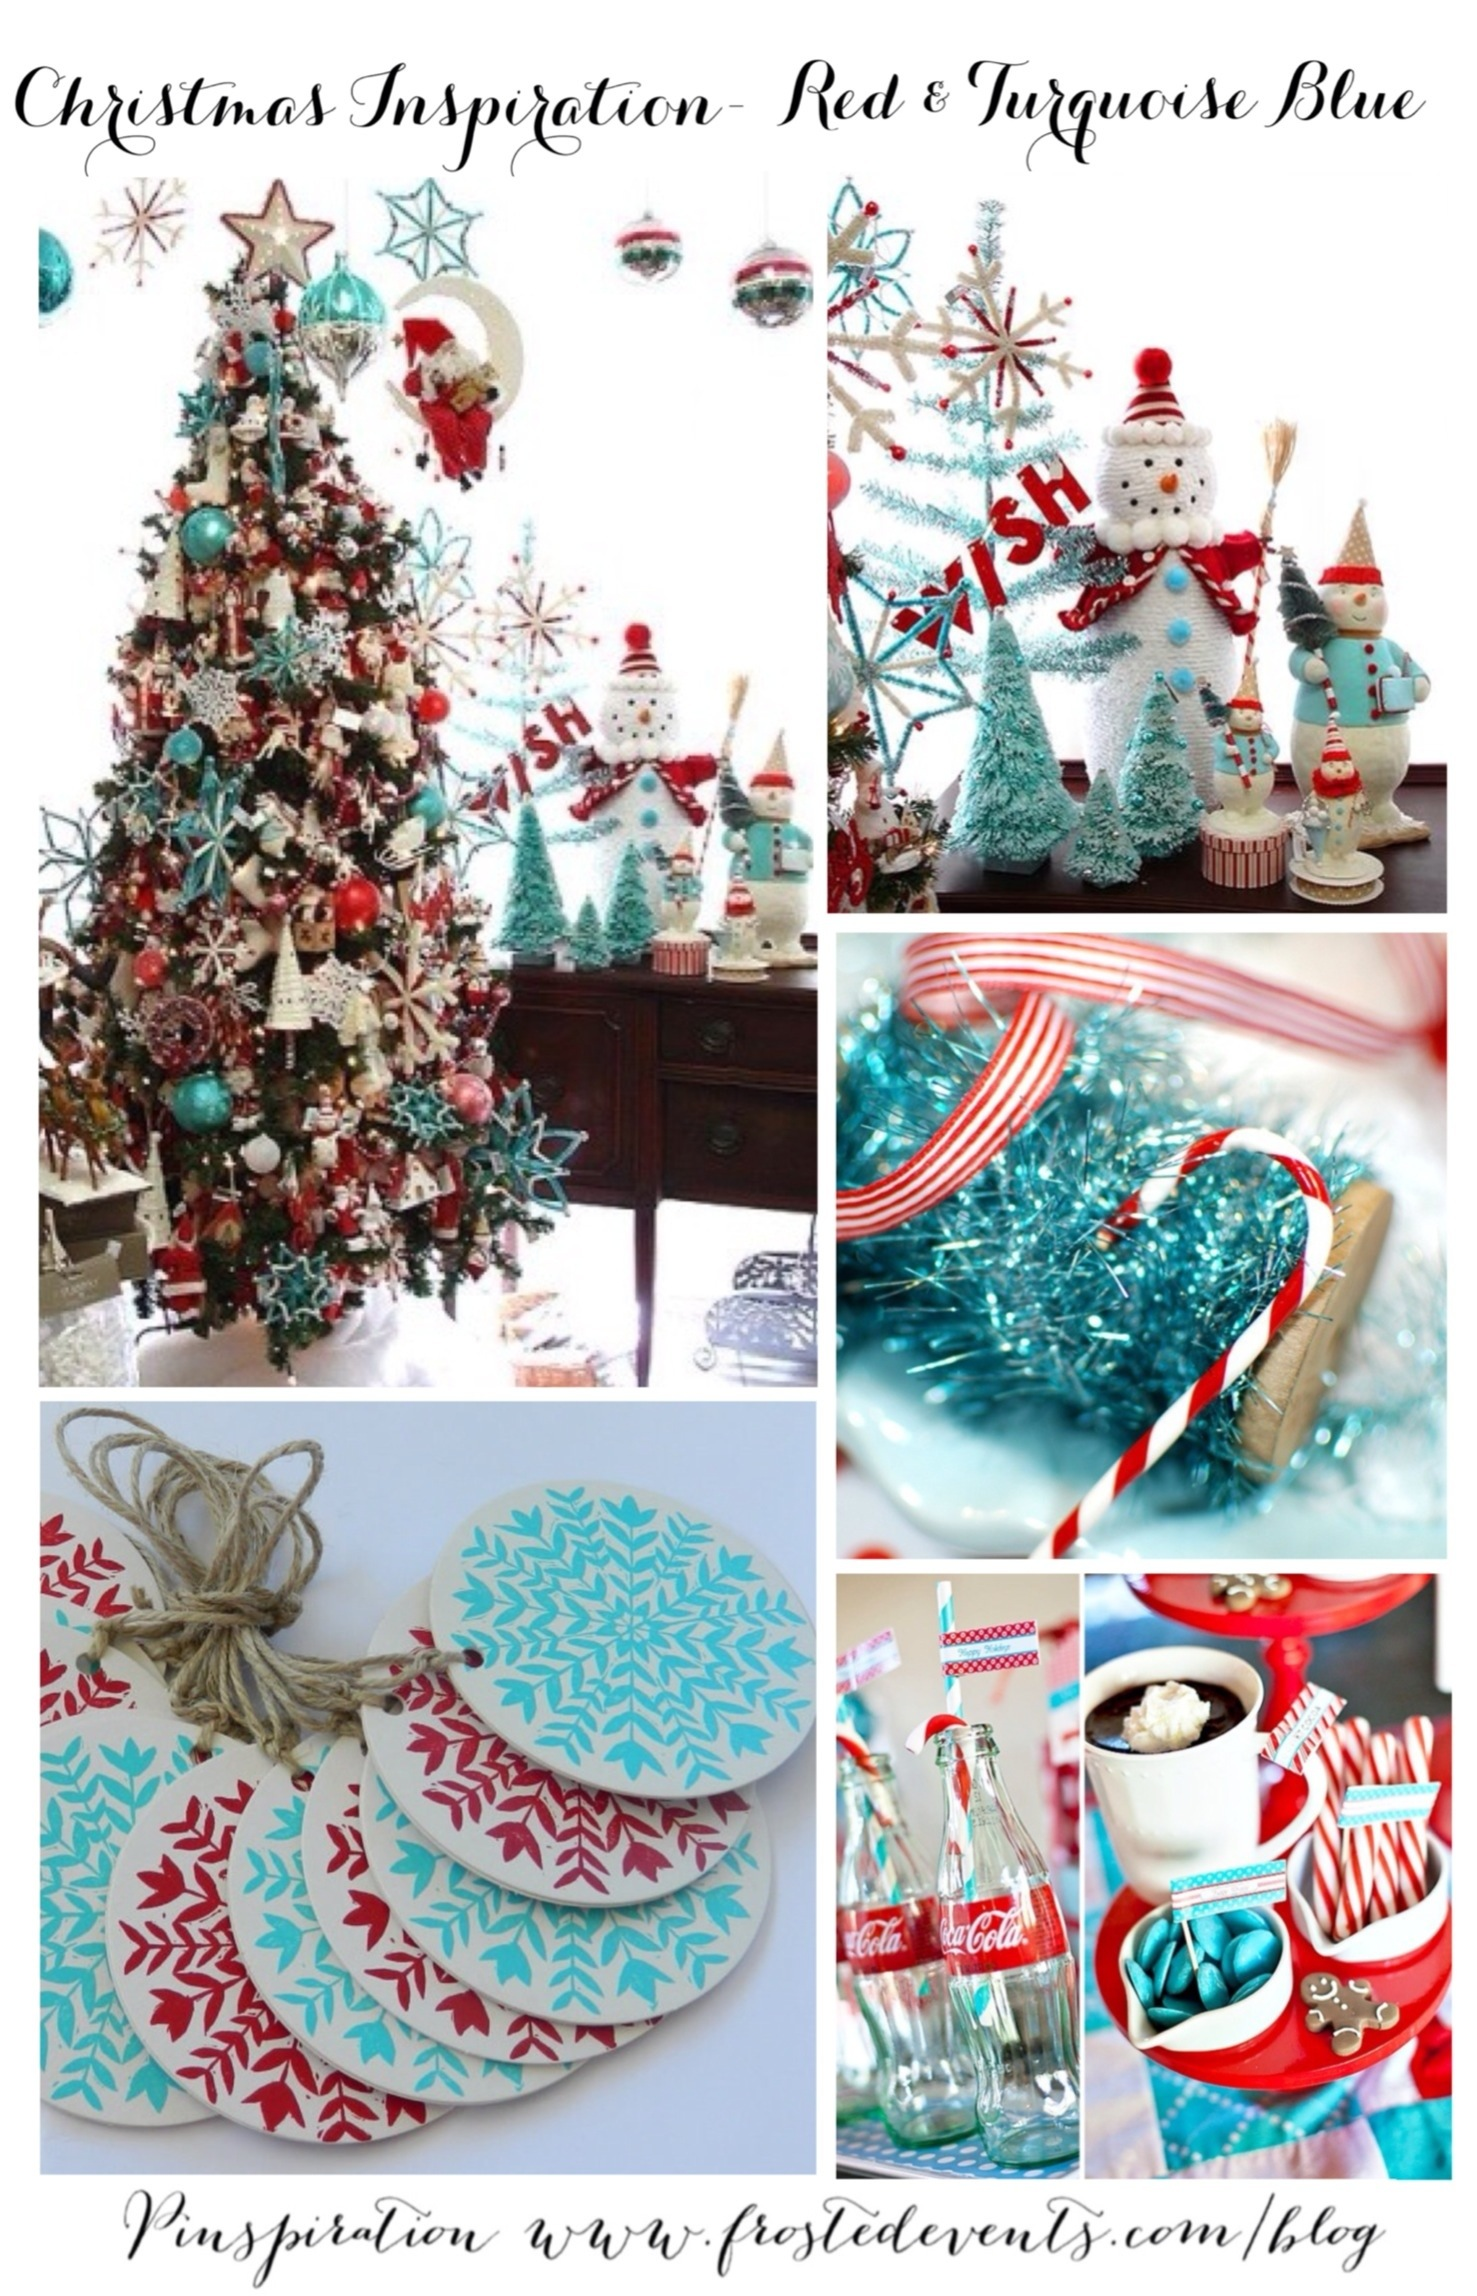 Christmas Decorations for the Home - Red and Aqua Blue - Turquoise Holiday Decor via Misty Nelson @frostedevents Home Decor and DIY blog